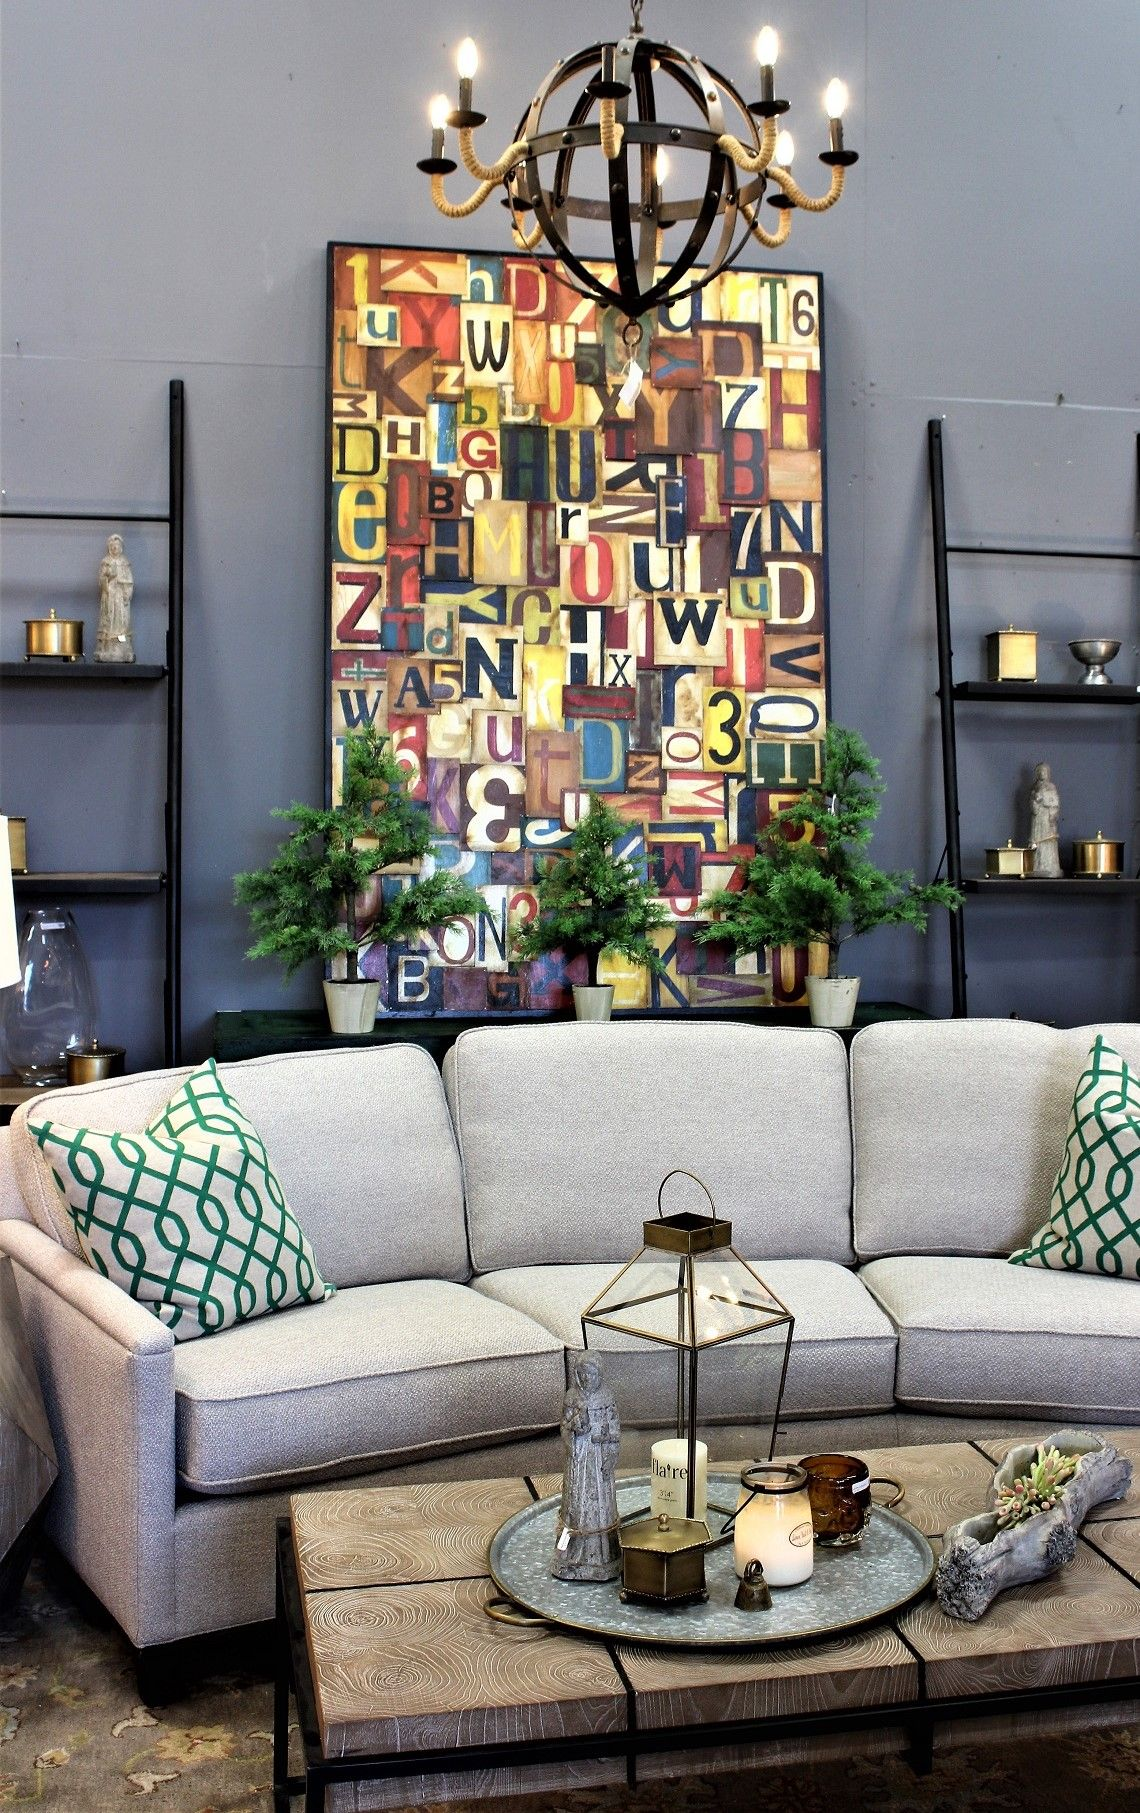 Living Room Showrooms Neutral Rugs For Pin By Cokas Diko Home On In 2018 Pinterest Inspiration Showroom Fashion